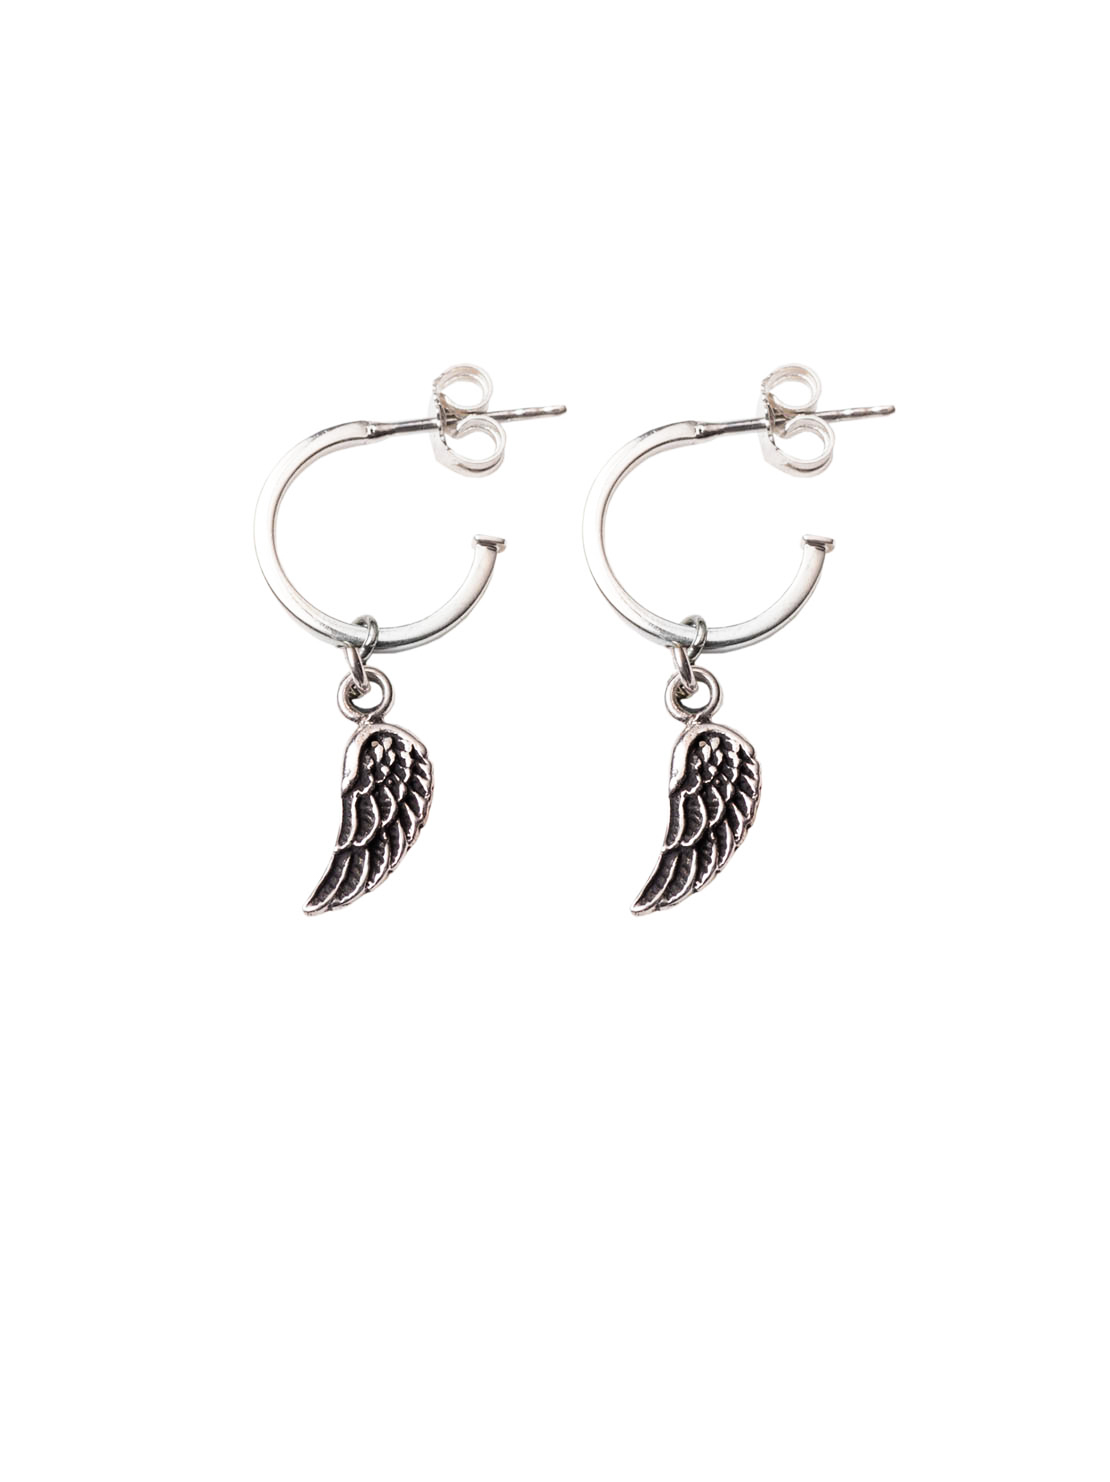 silver jewellery tobi product loop earrings hoop in the us